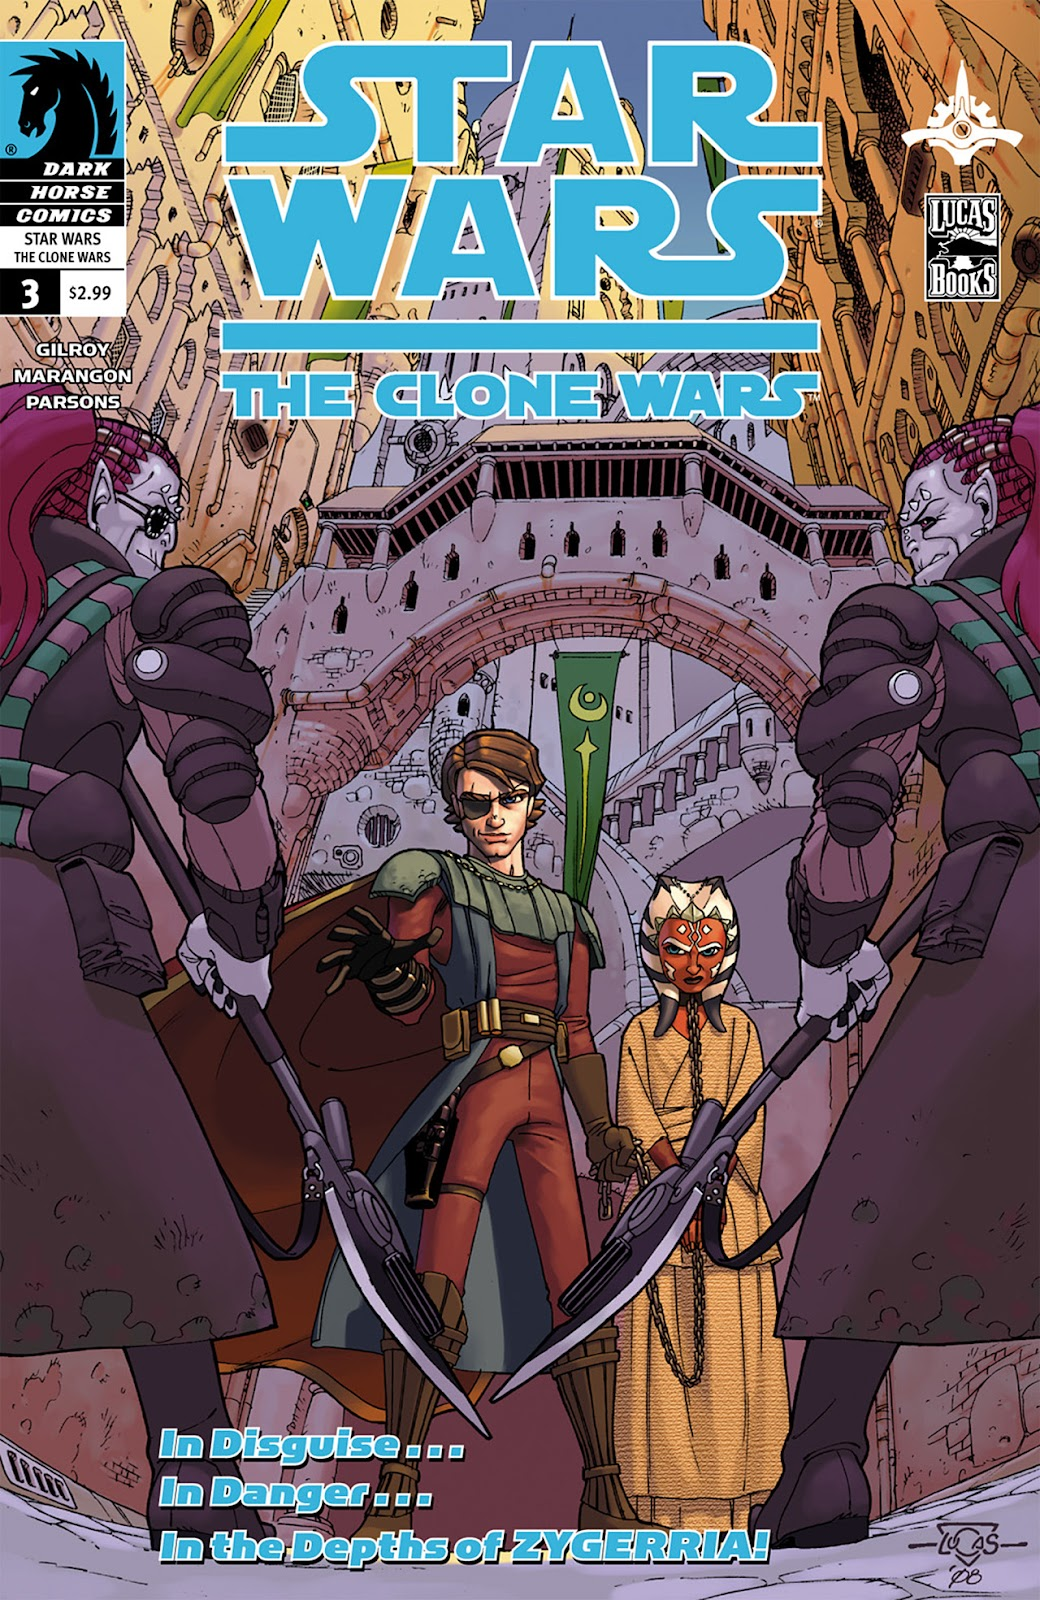 star wars the clone wars issue 3 read full comics online for free